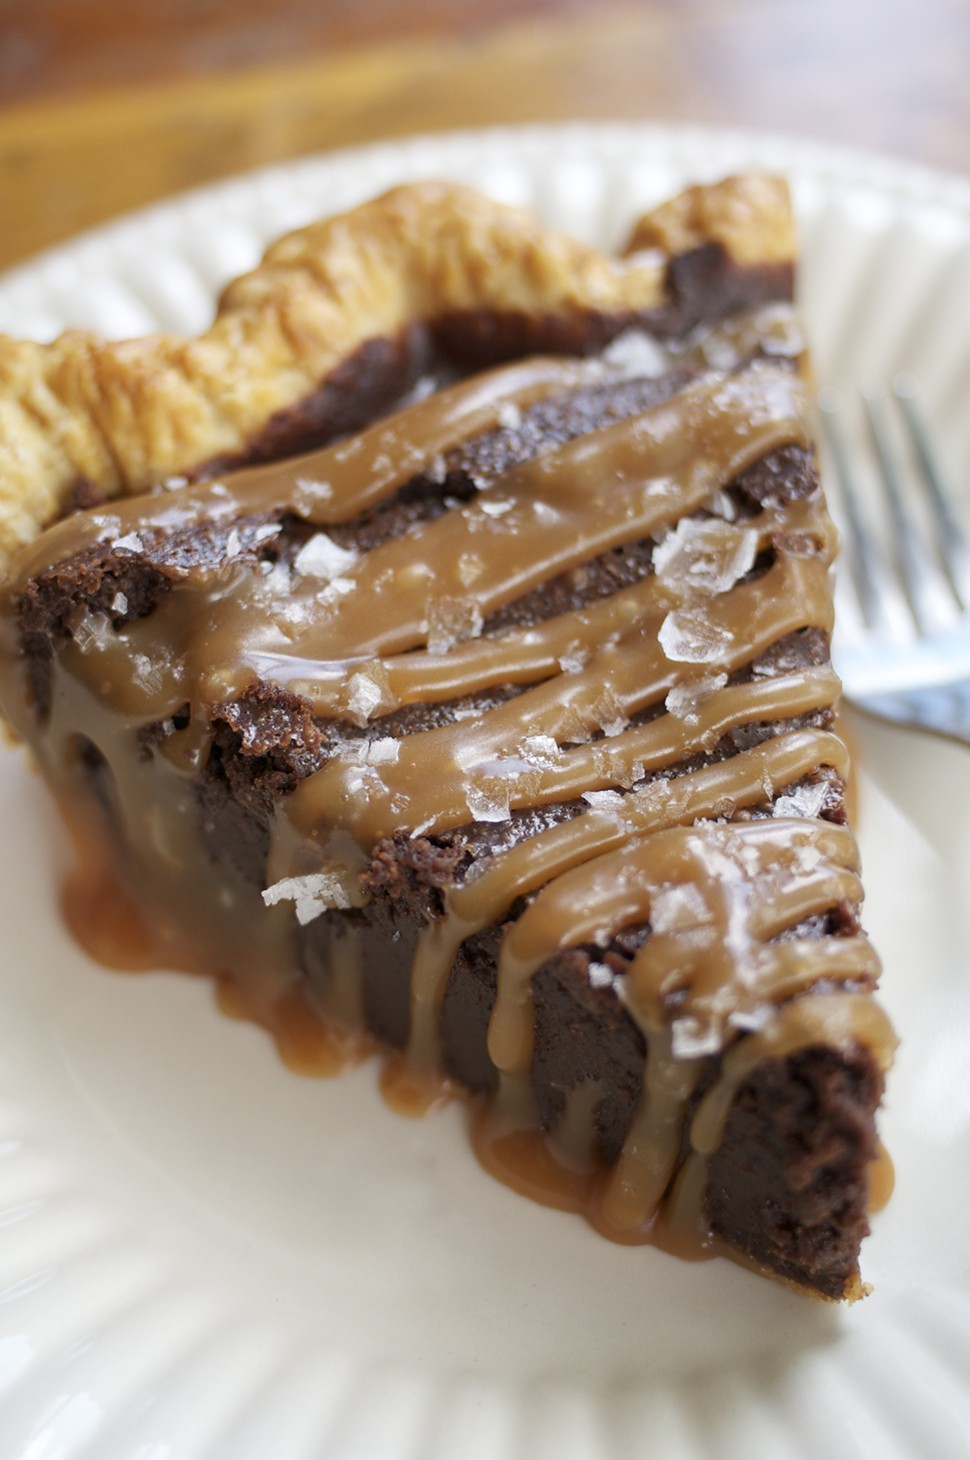 Bang Bang Pies chocolate pie